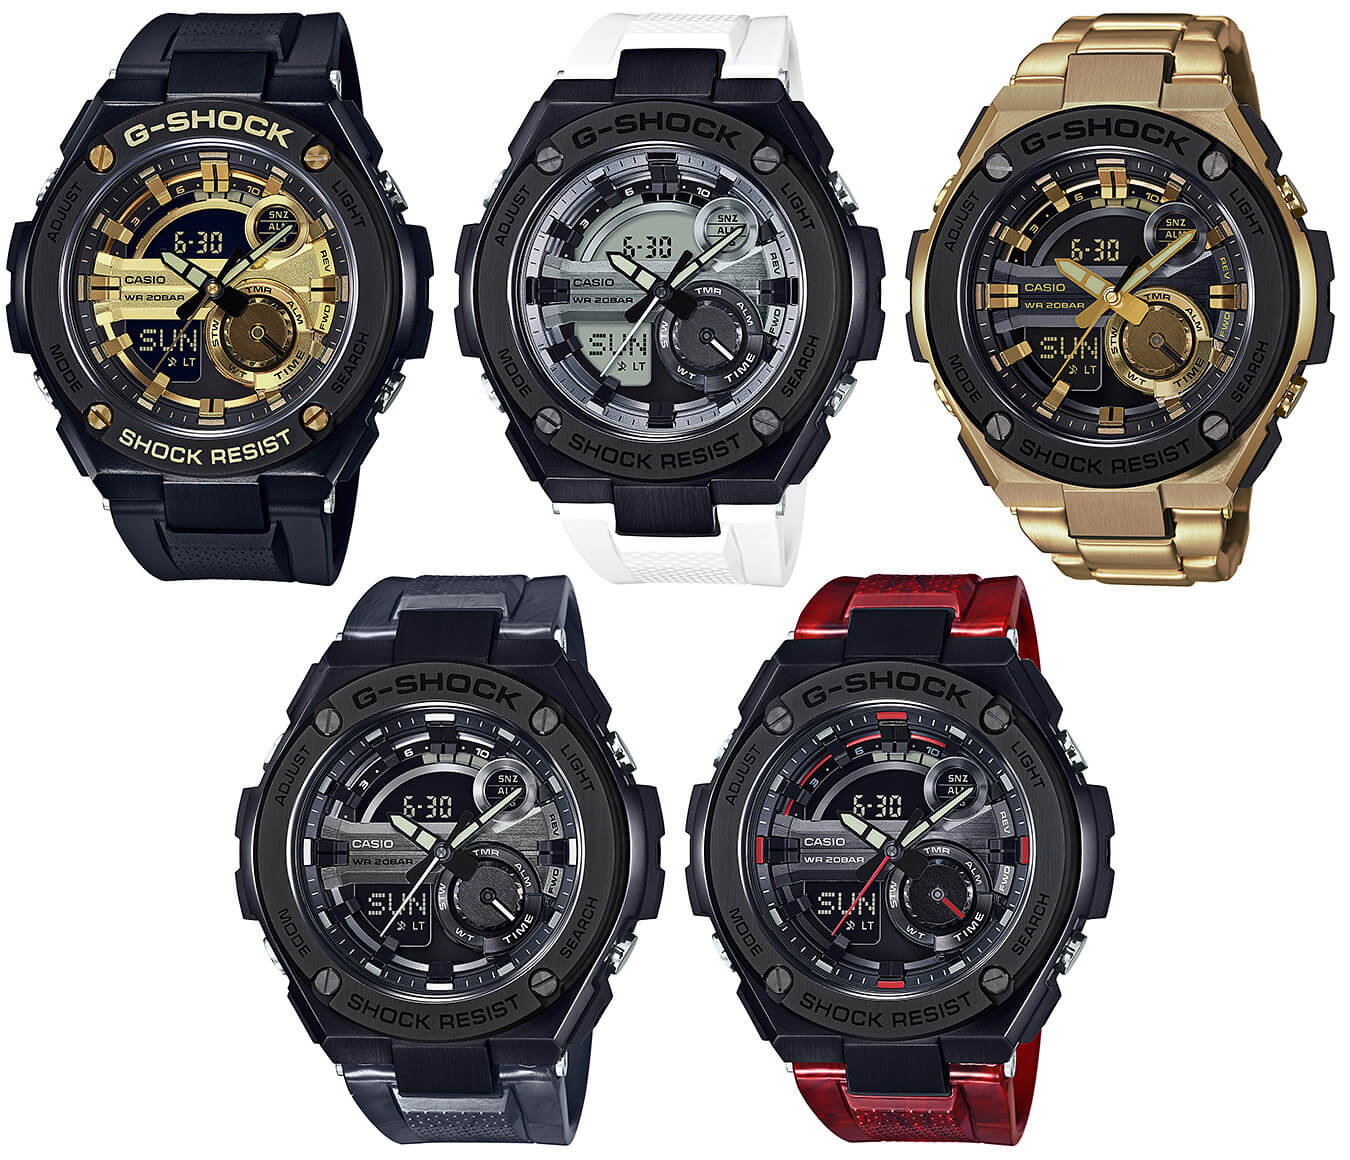 2a0b0fa0df3 New G-Shock G-STEEL GST-210 Watches  Black   Gold